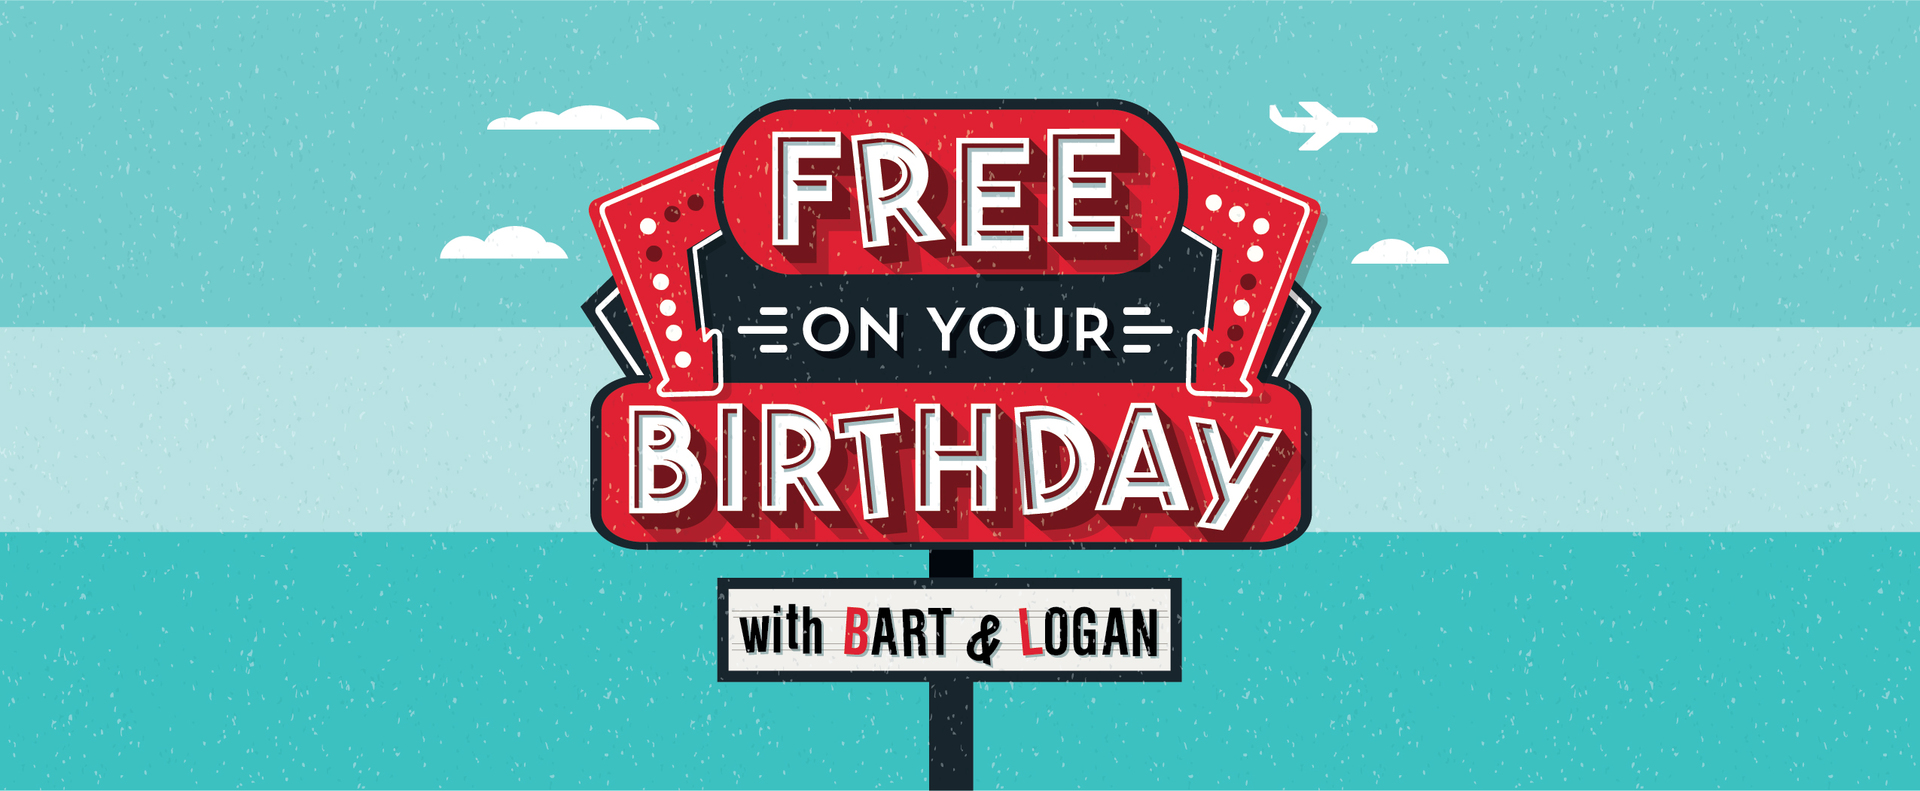 Free On Your Birthday Store